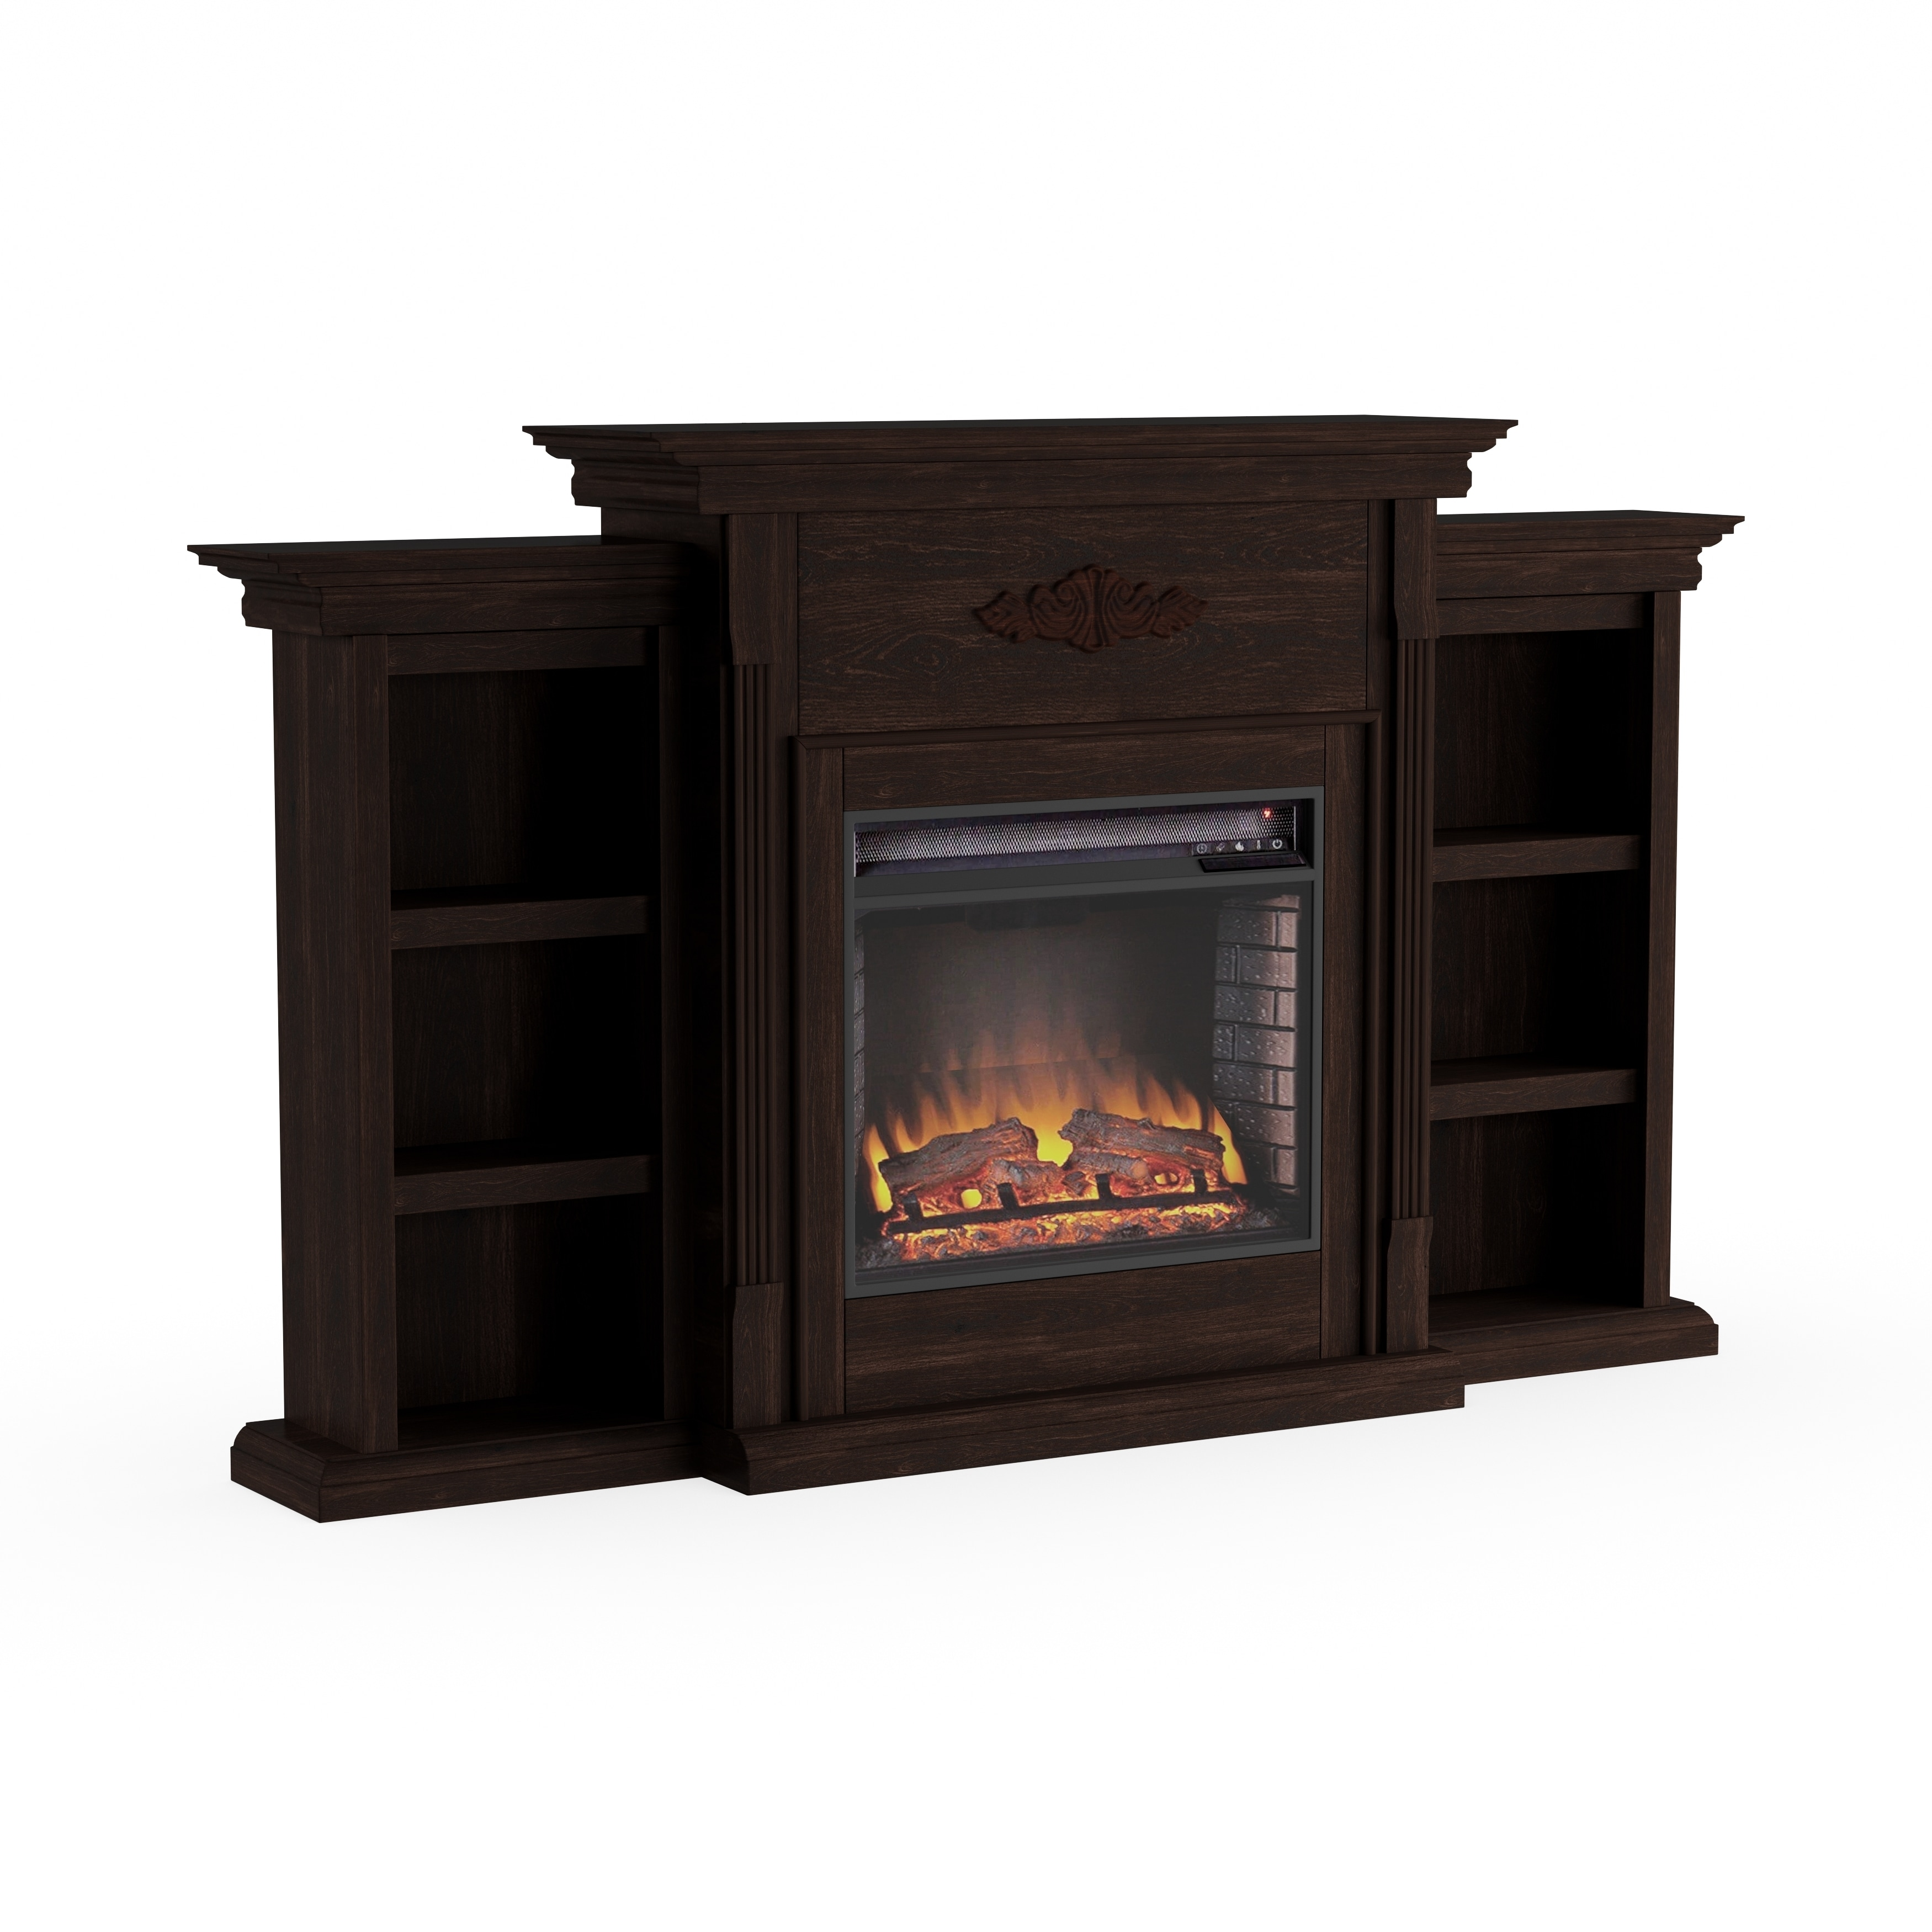 Space Heaters Fireplace Gracewood Hollow Forbes 70 Inch Espresso Electric Fireplace